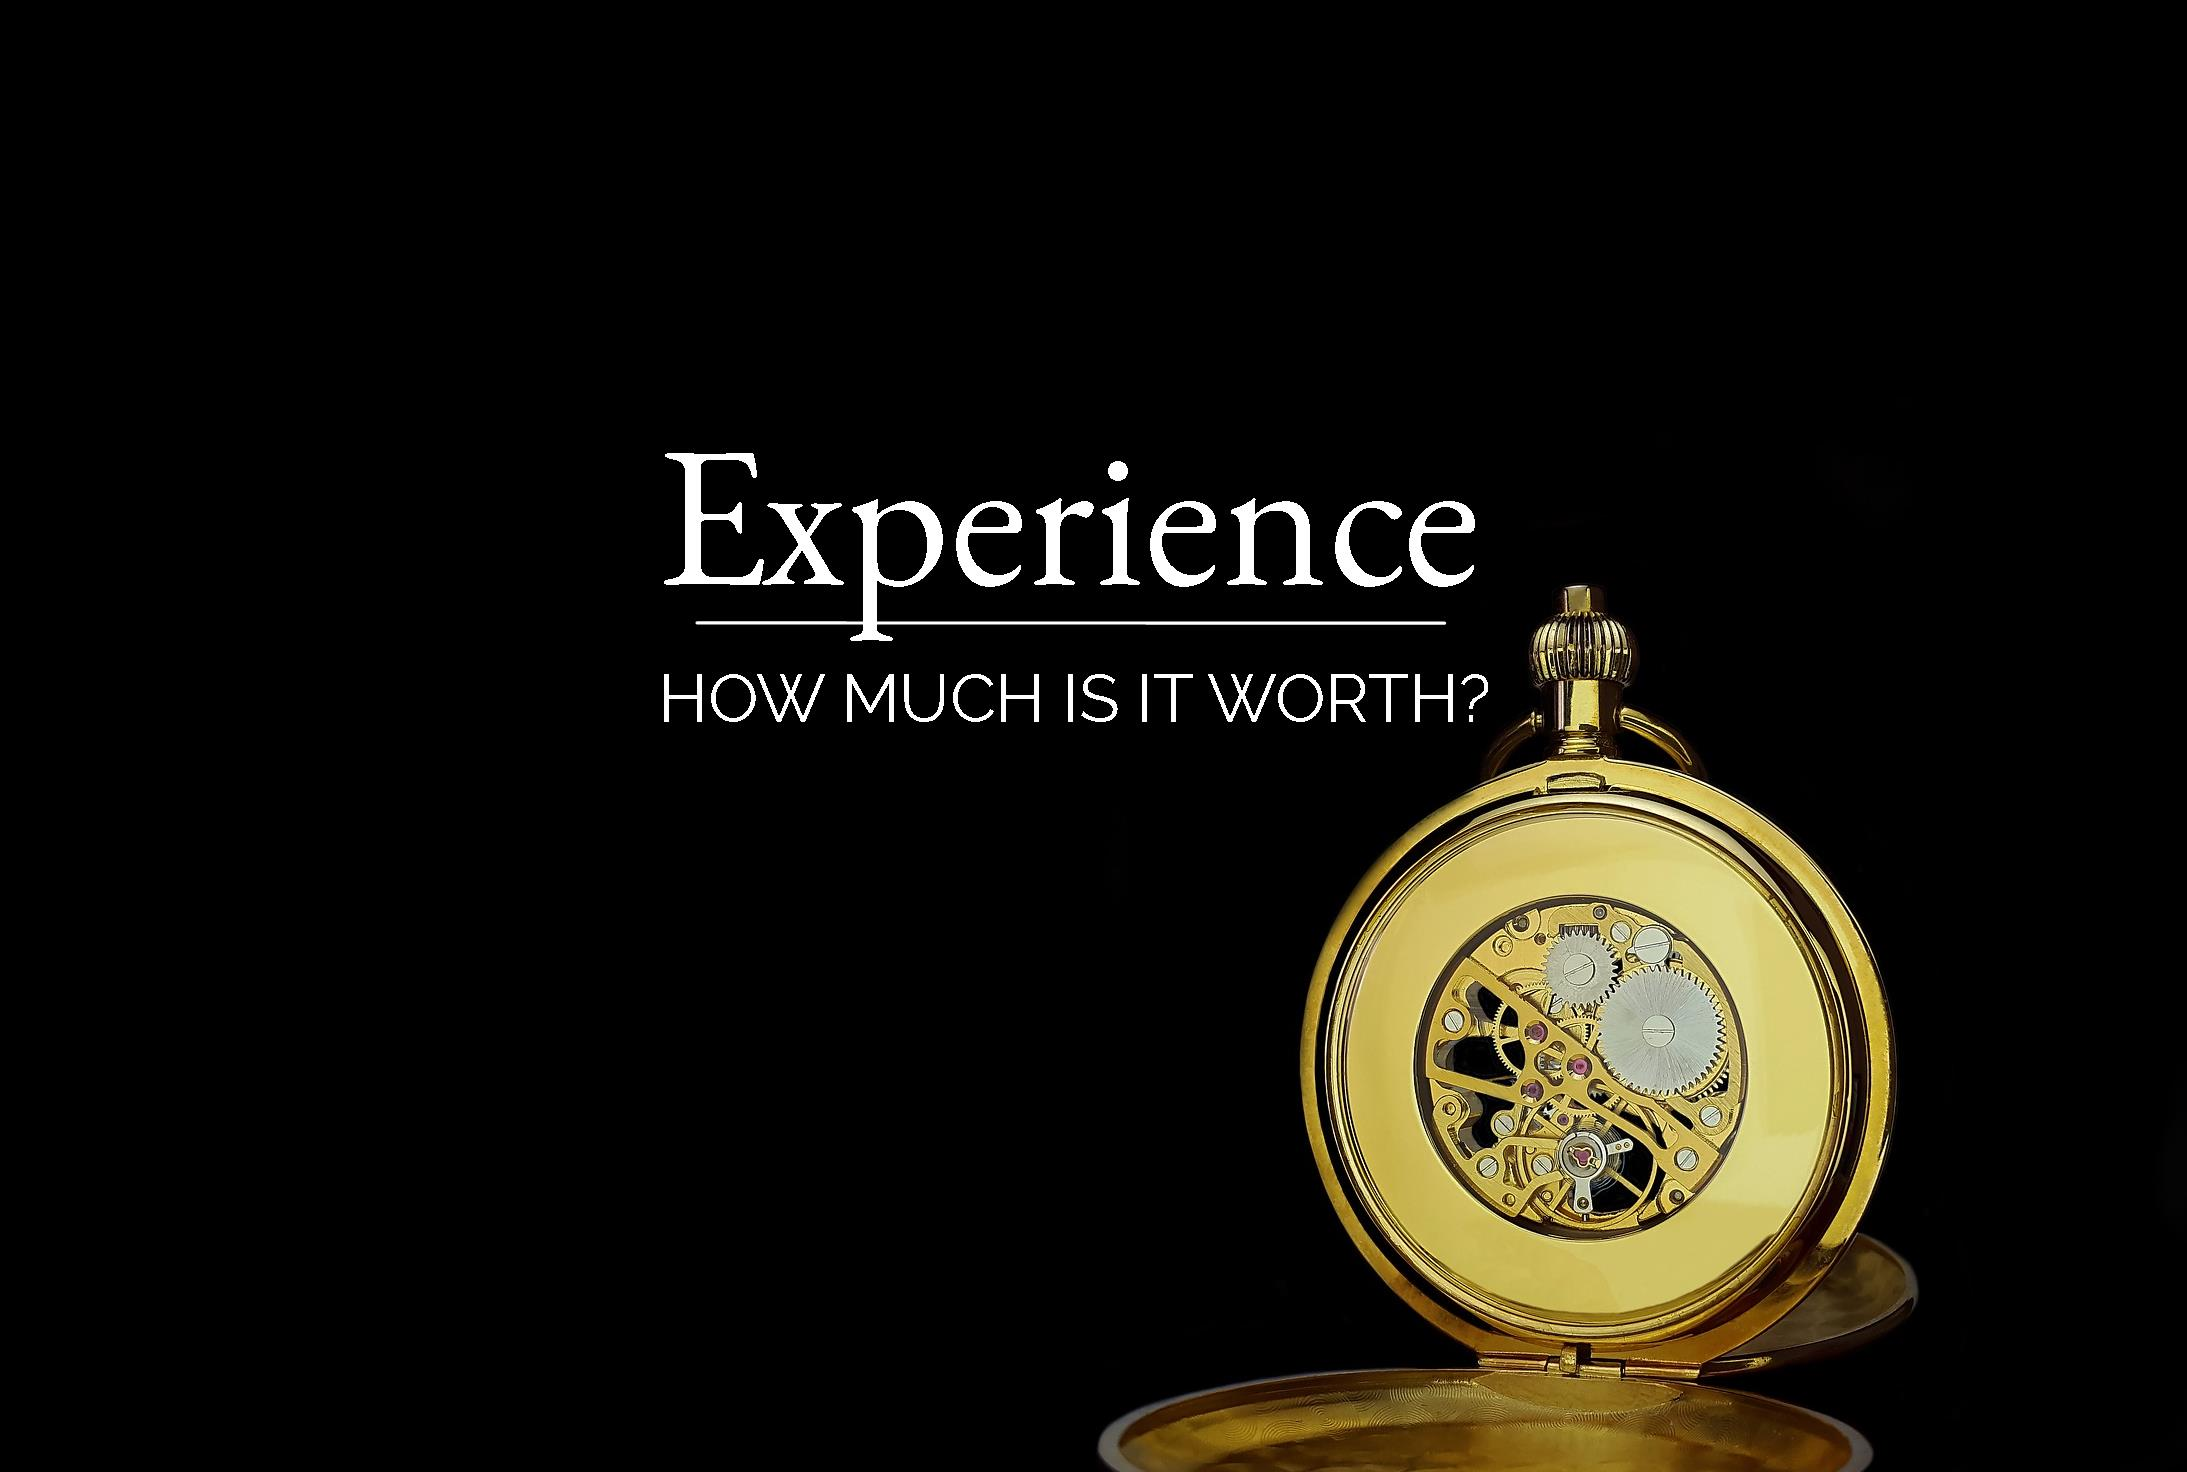 How much is experience worth?